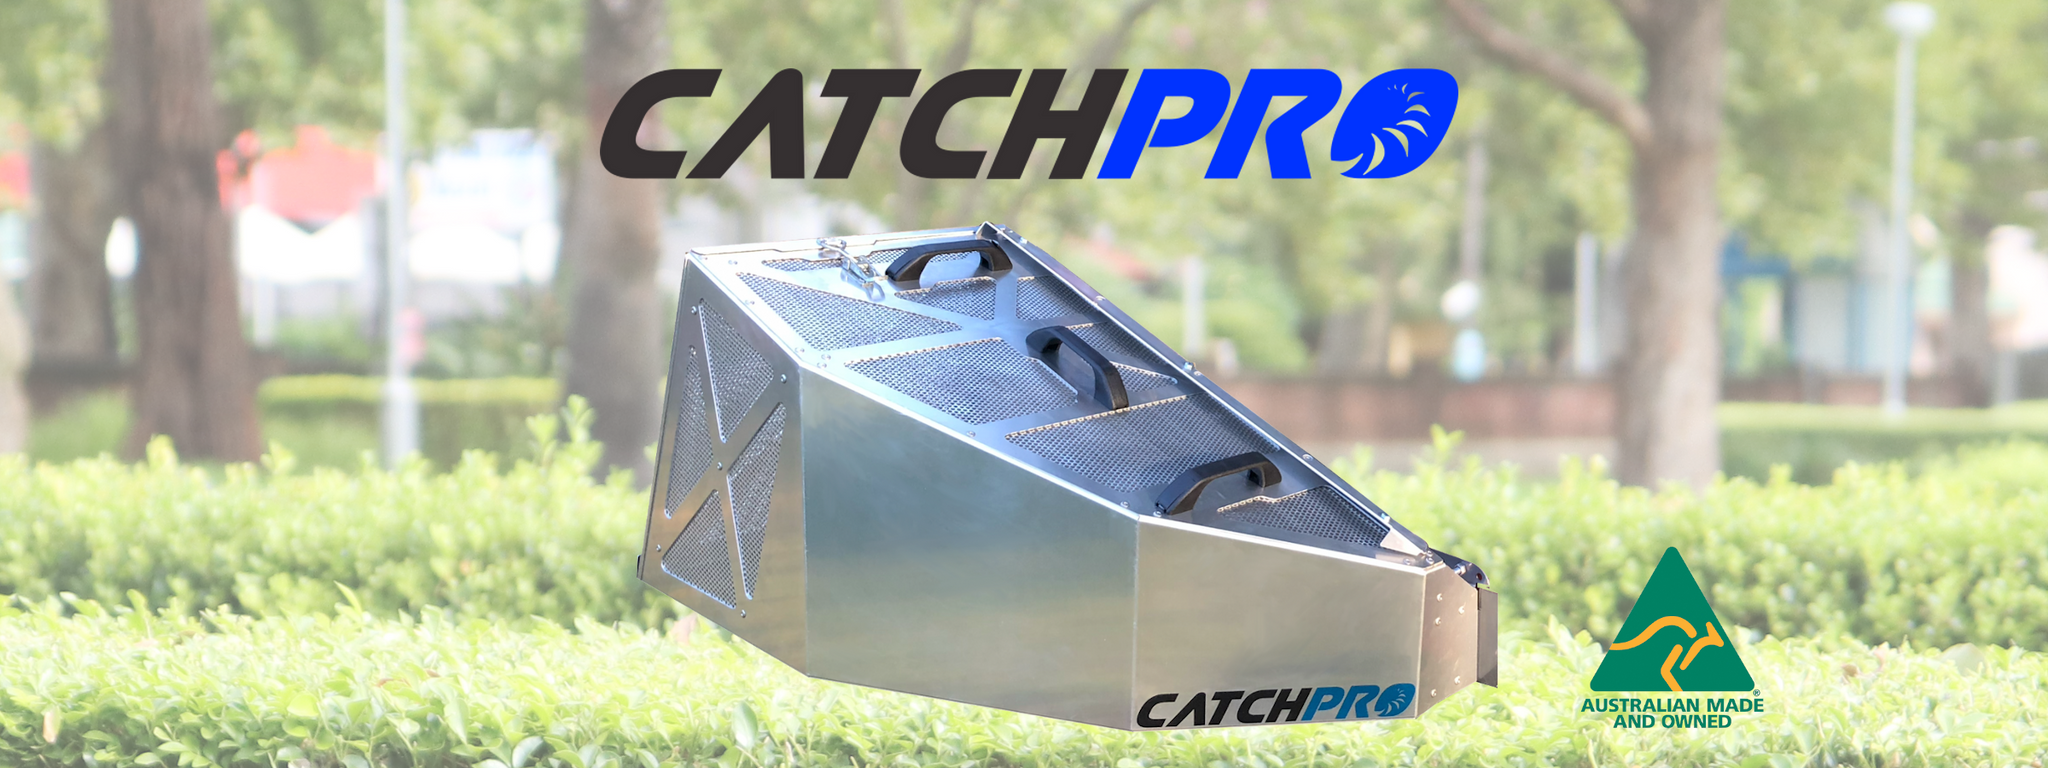 Catch Pro grass Catcher Bundles for Your Ride On Mower